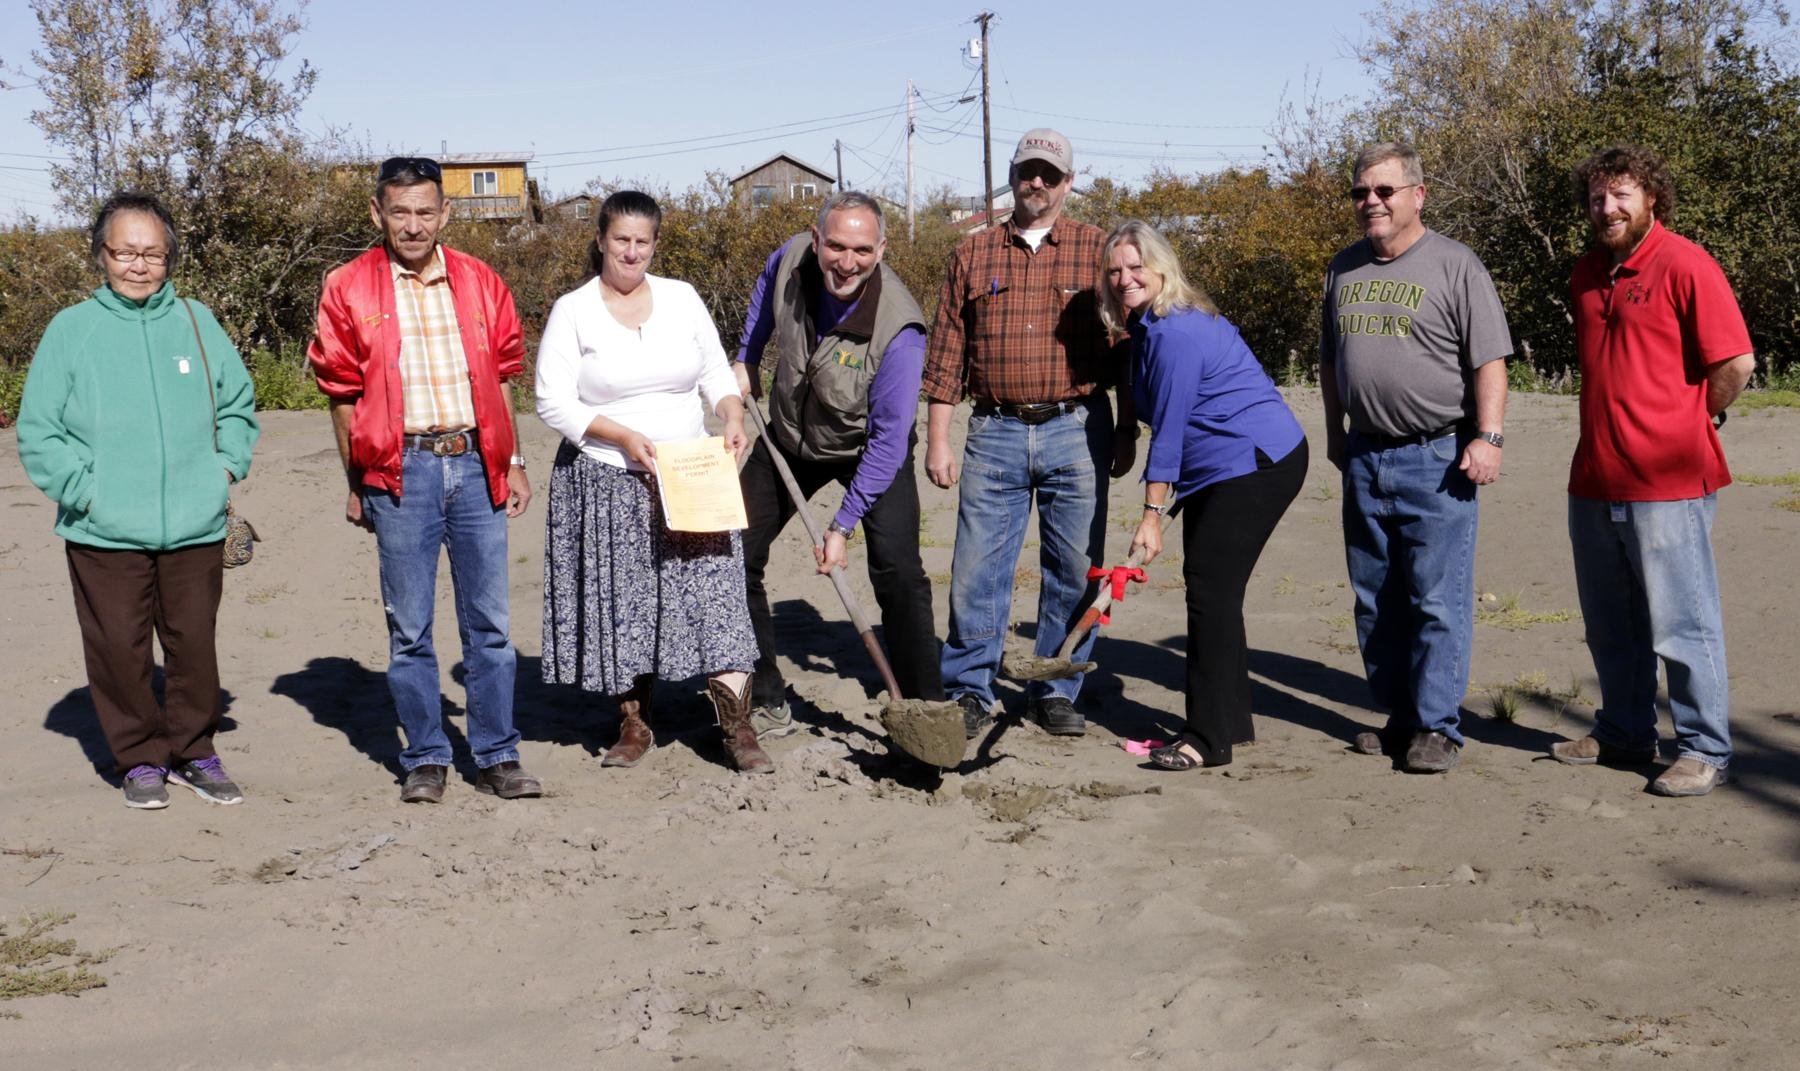 Bethel Family Clinic board members break ground at the construction site in Bethel. (Photo courtesy of Jehona Kadriu)